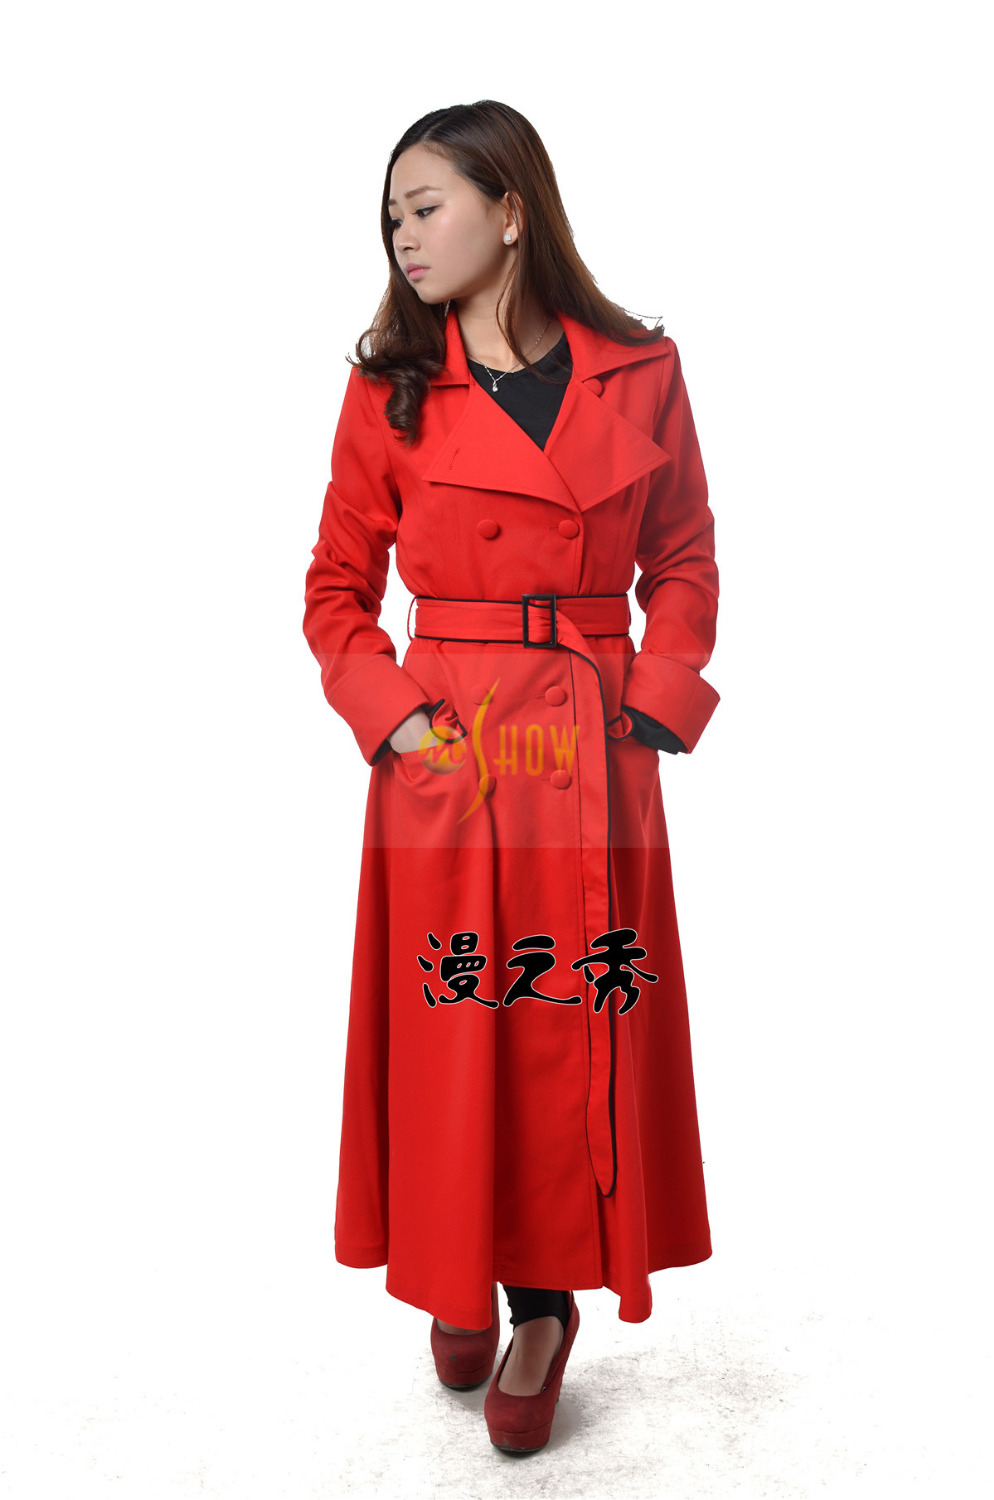 Movie-Carmen-Sandiego-Costume-Cosplay-For-Women-Halloween -Party-Carnival-Cosplay-Costume-Red-Top-Quality-Full.jpg